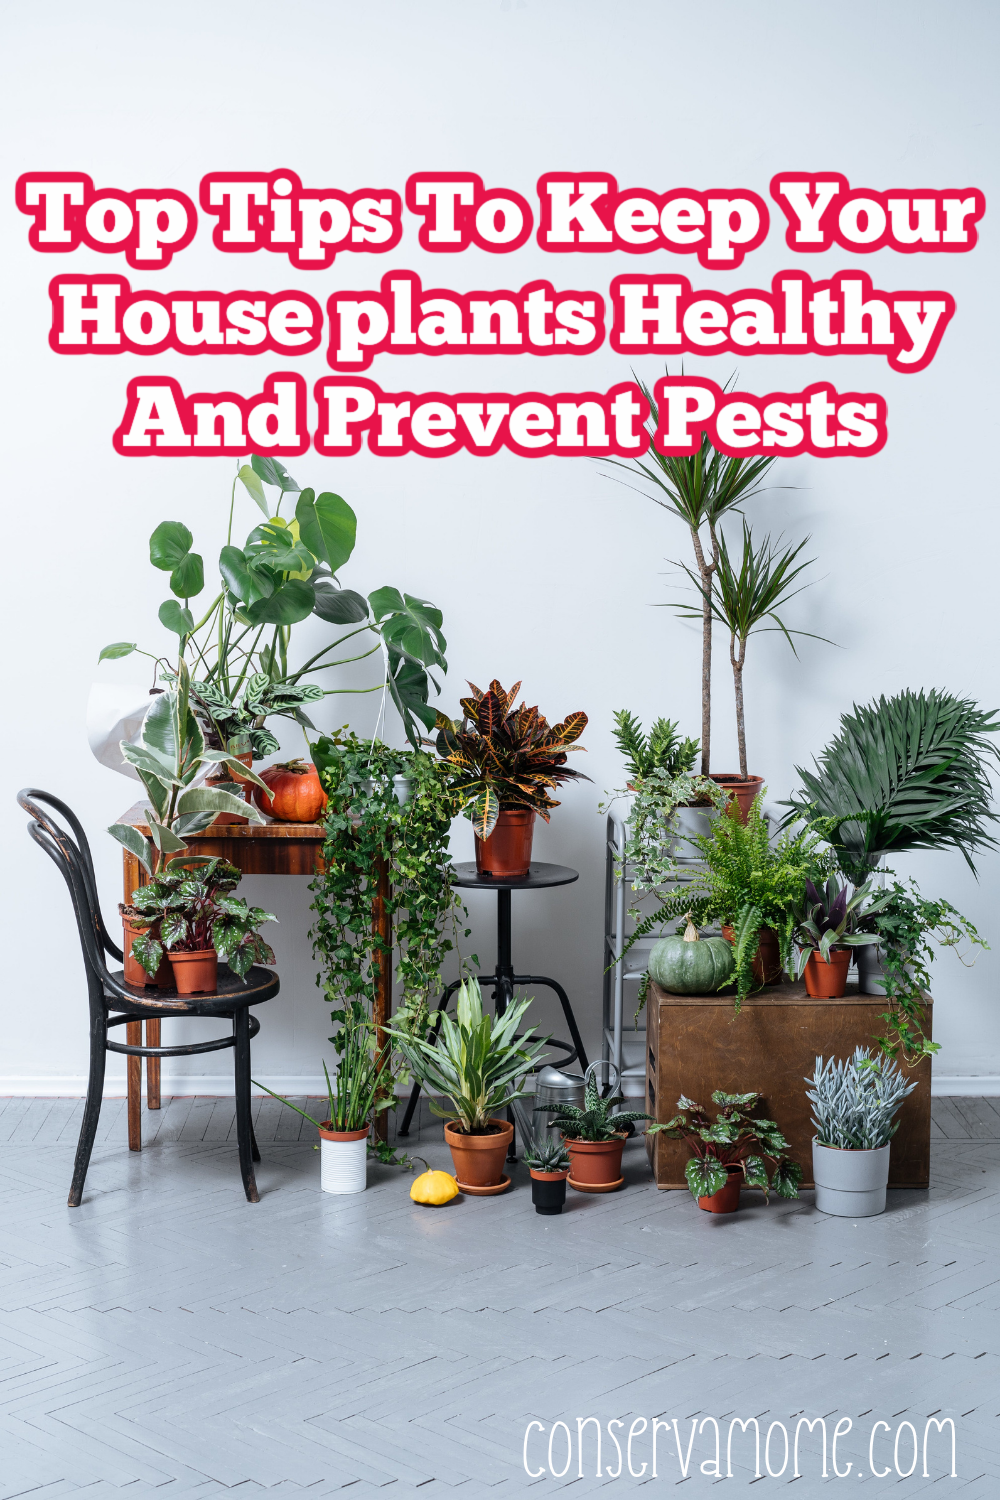 Top Tips to Keep your house plants healthy and prevent pests